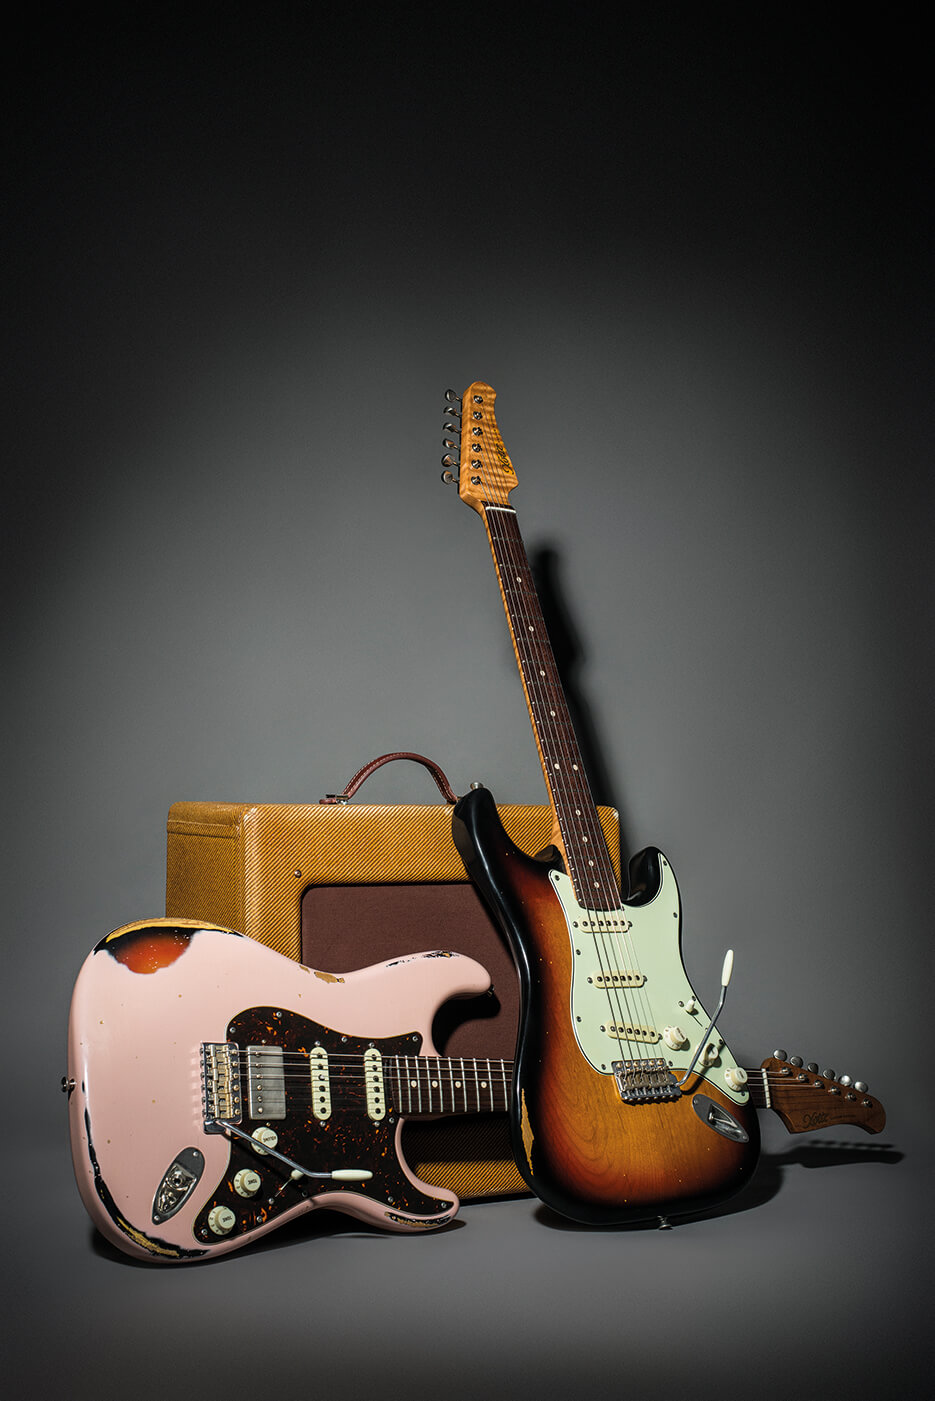 You May Know The Brands Stompboxes But Californian Brand Xotic Has A History Of Making High Quality Electric Guitars Too Chris Vinnicombe Sees Double